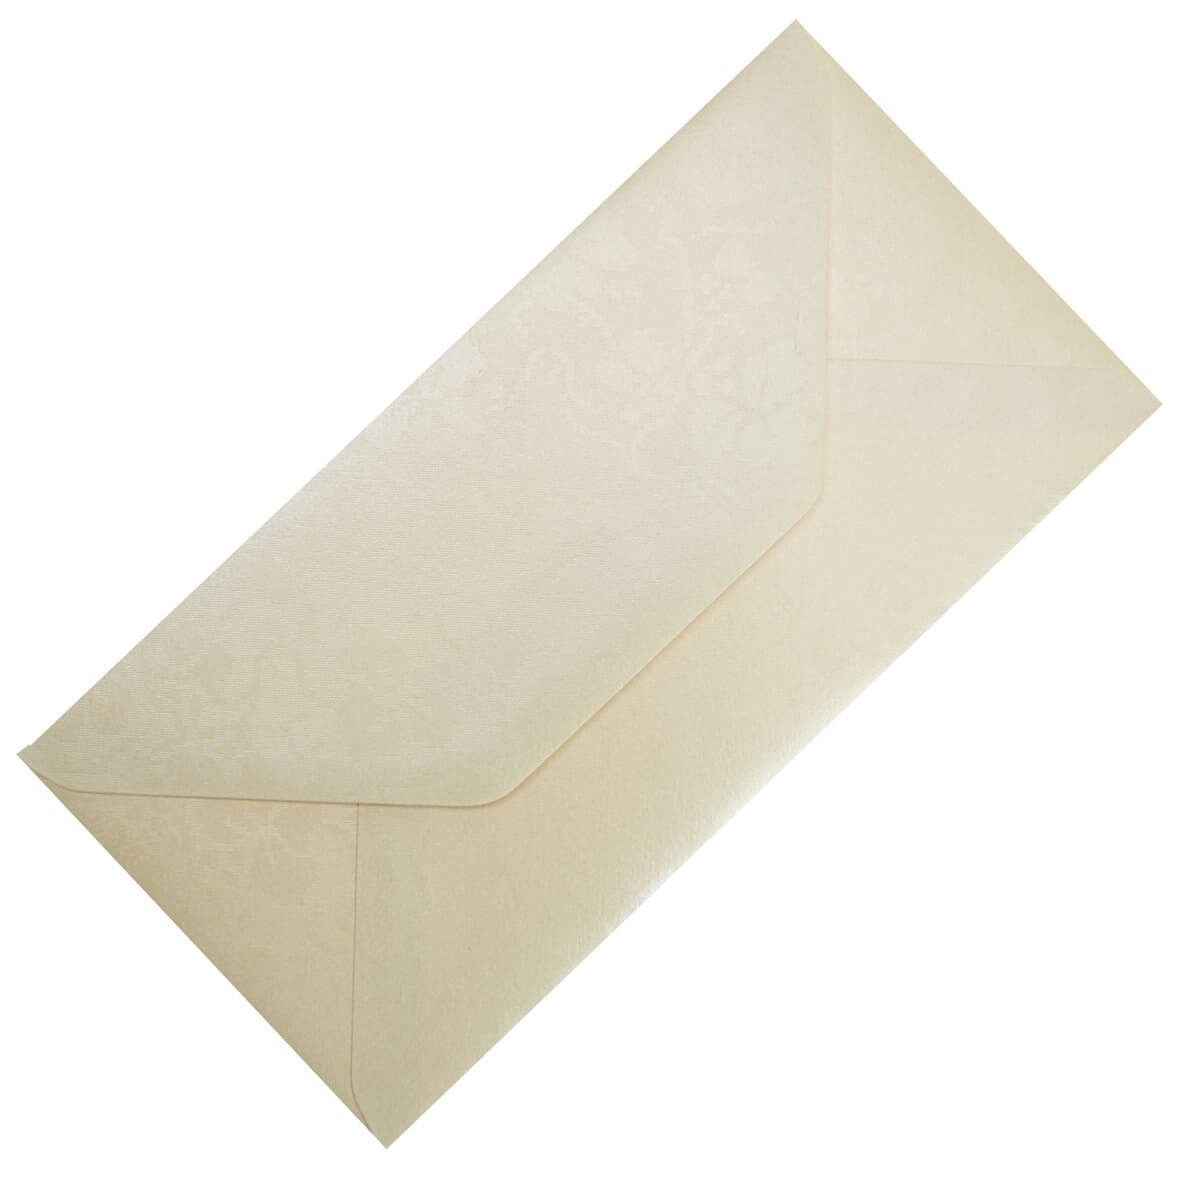 Broderie Cream DL Envelope Large Tall